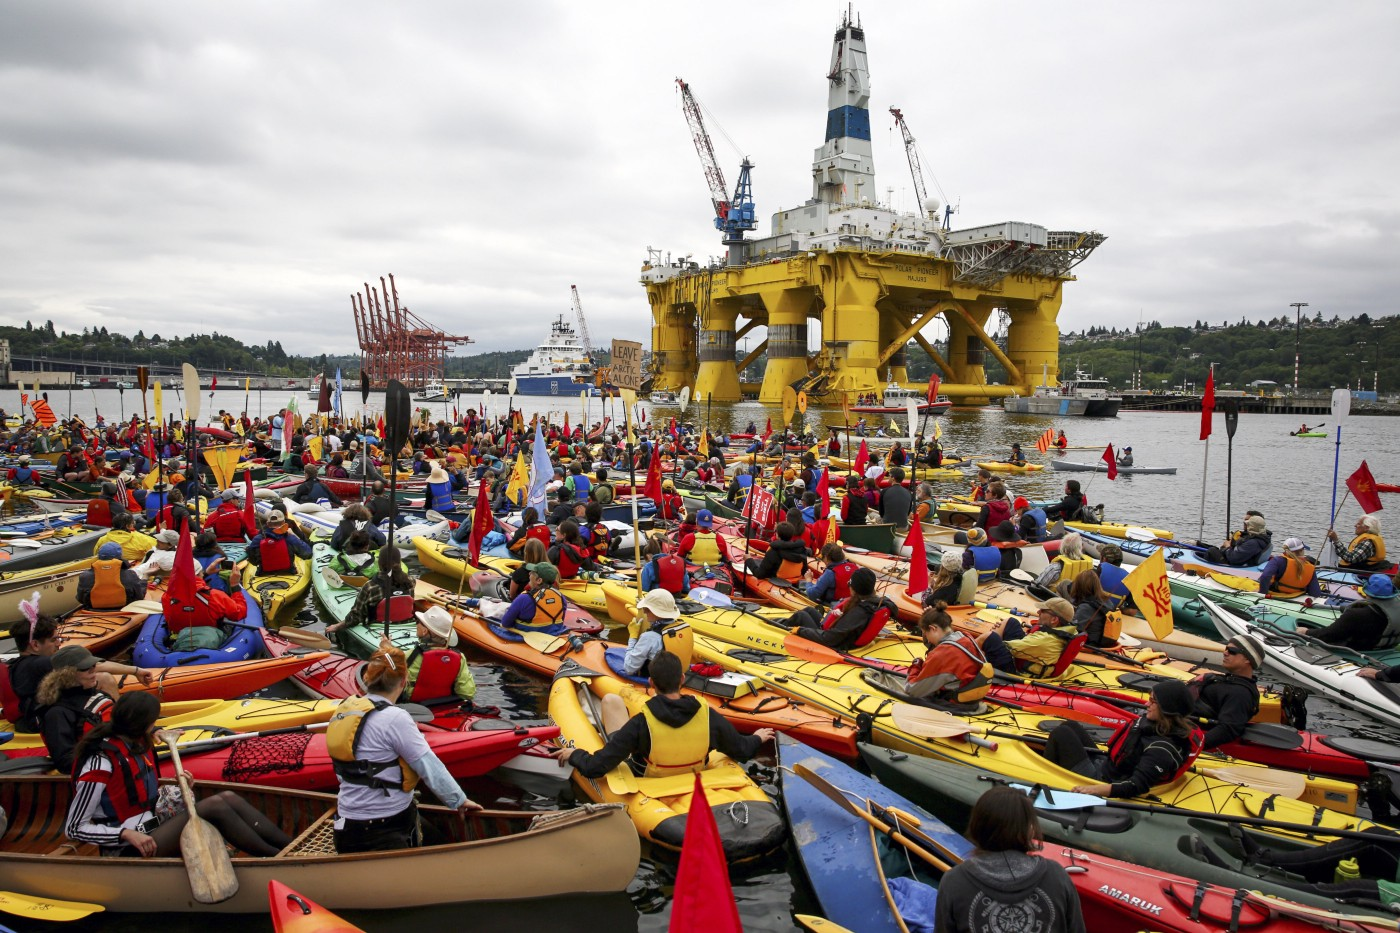 """Activists who oppose Royal Dutch Shell's plans to drill for oil in the Arctic Ocean prepare their kayaks for the """"Paddle in Seattle"""" protest on Saturday, May 16, 2015, in Seattle."""